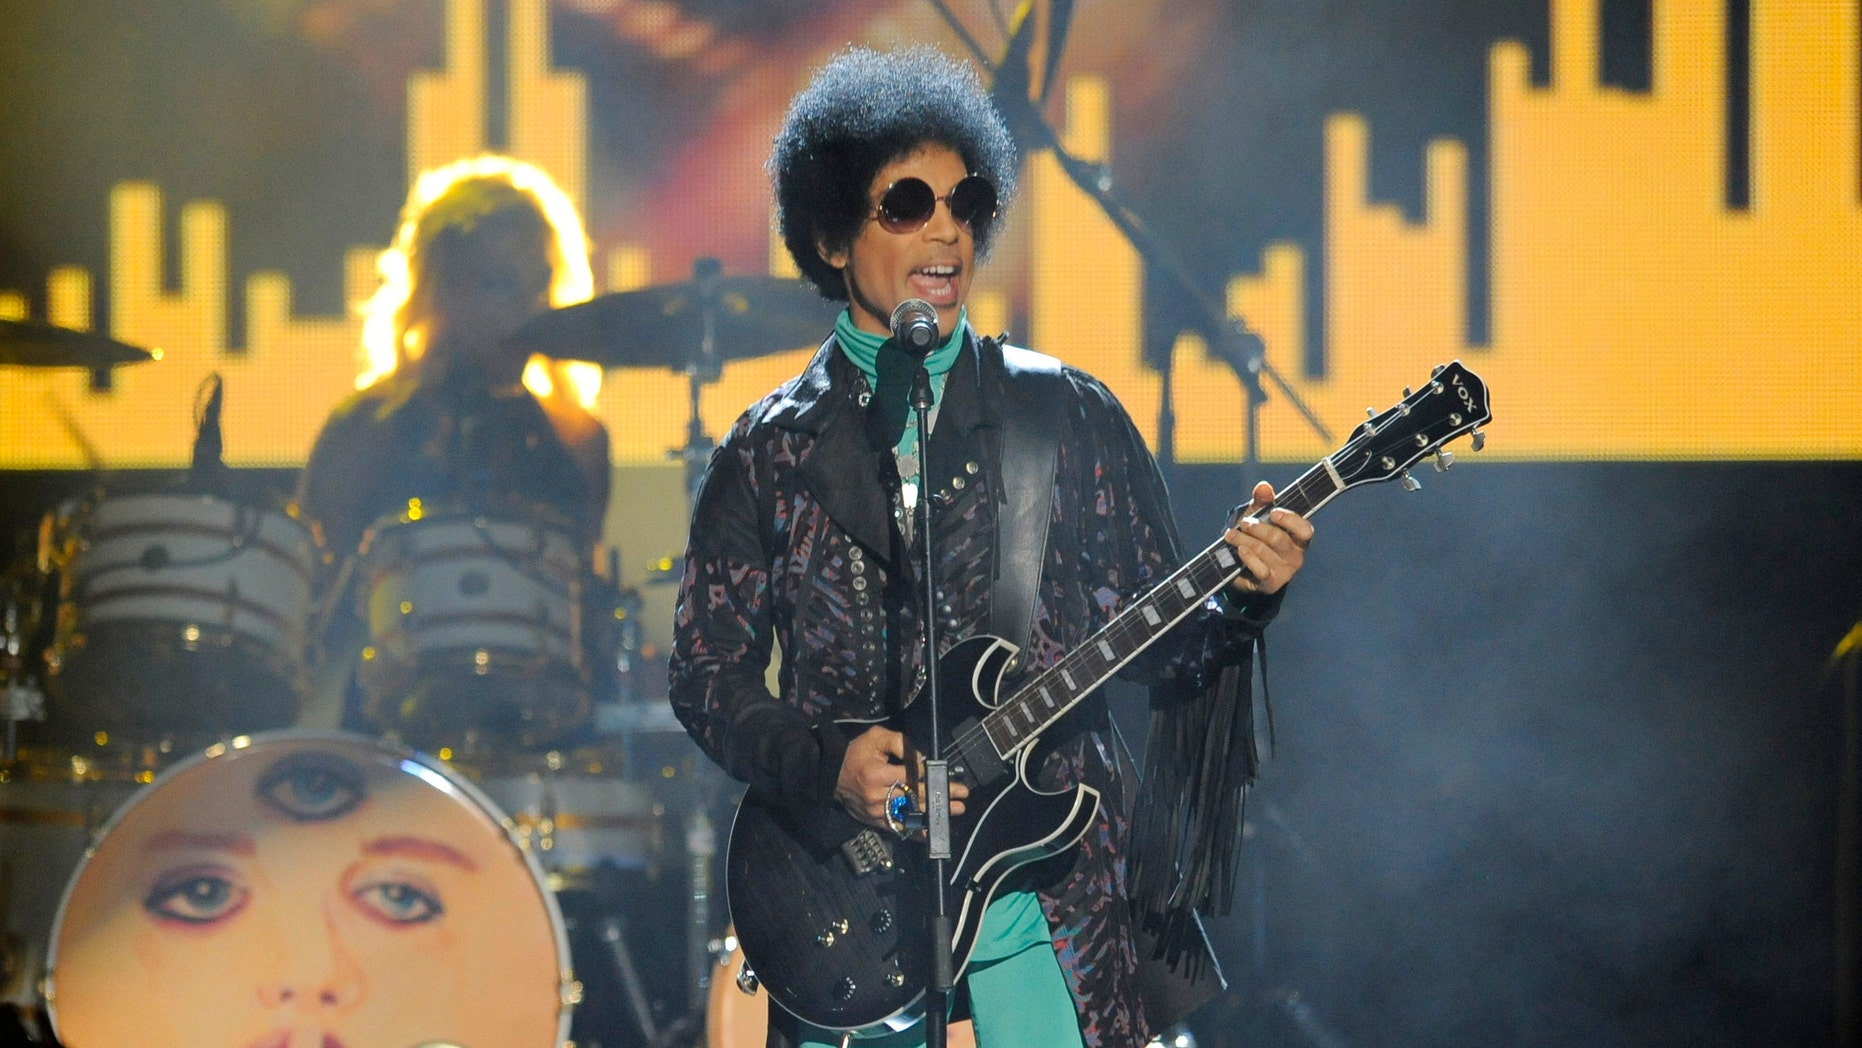 FILE - In this May 19, 2013, file photo, Prince performs at the Billboard Music Awards at the MGM Grand Garden Arena in Las Vegas. More than five months after Prince's fatal drug overdose, investigators have narrowed their focus to two tracks: whether doctors illegally prescribed opioids meant for the pop star and whether he obtained the fentanyl that killed him from a black-market source, a law enforcement official said. (Photo by Chris Pizzello/Invision/AP, File)